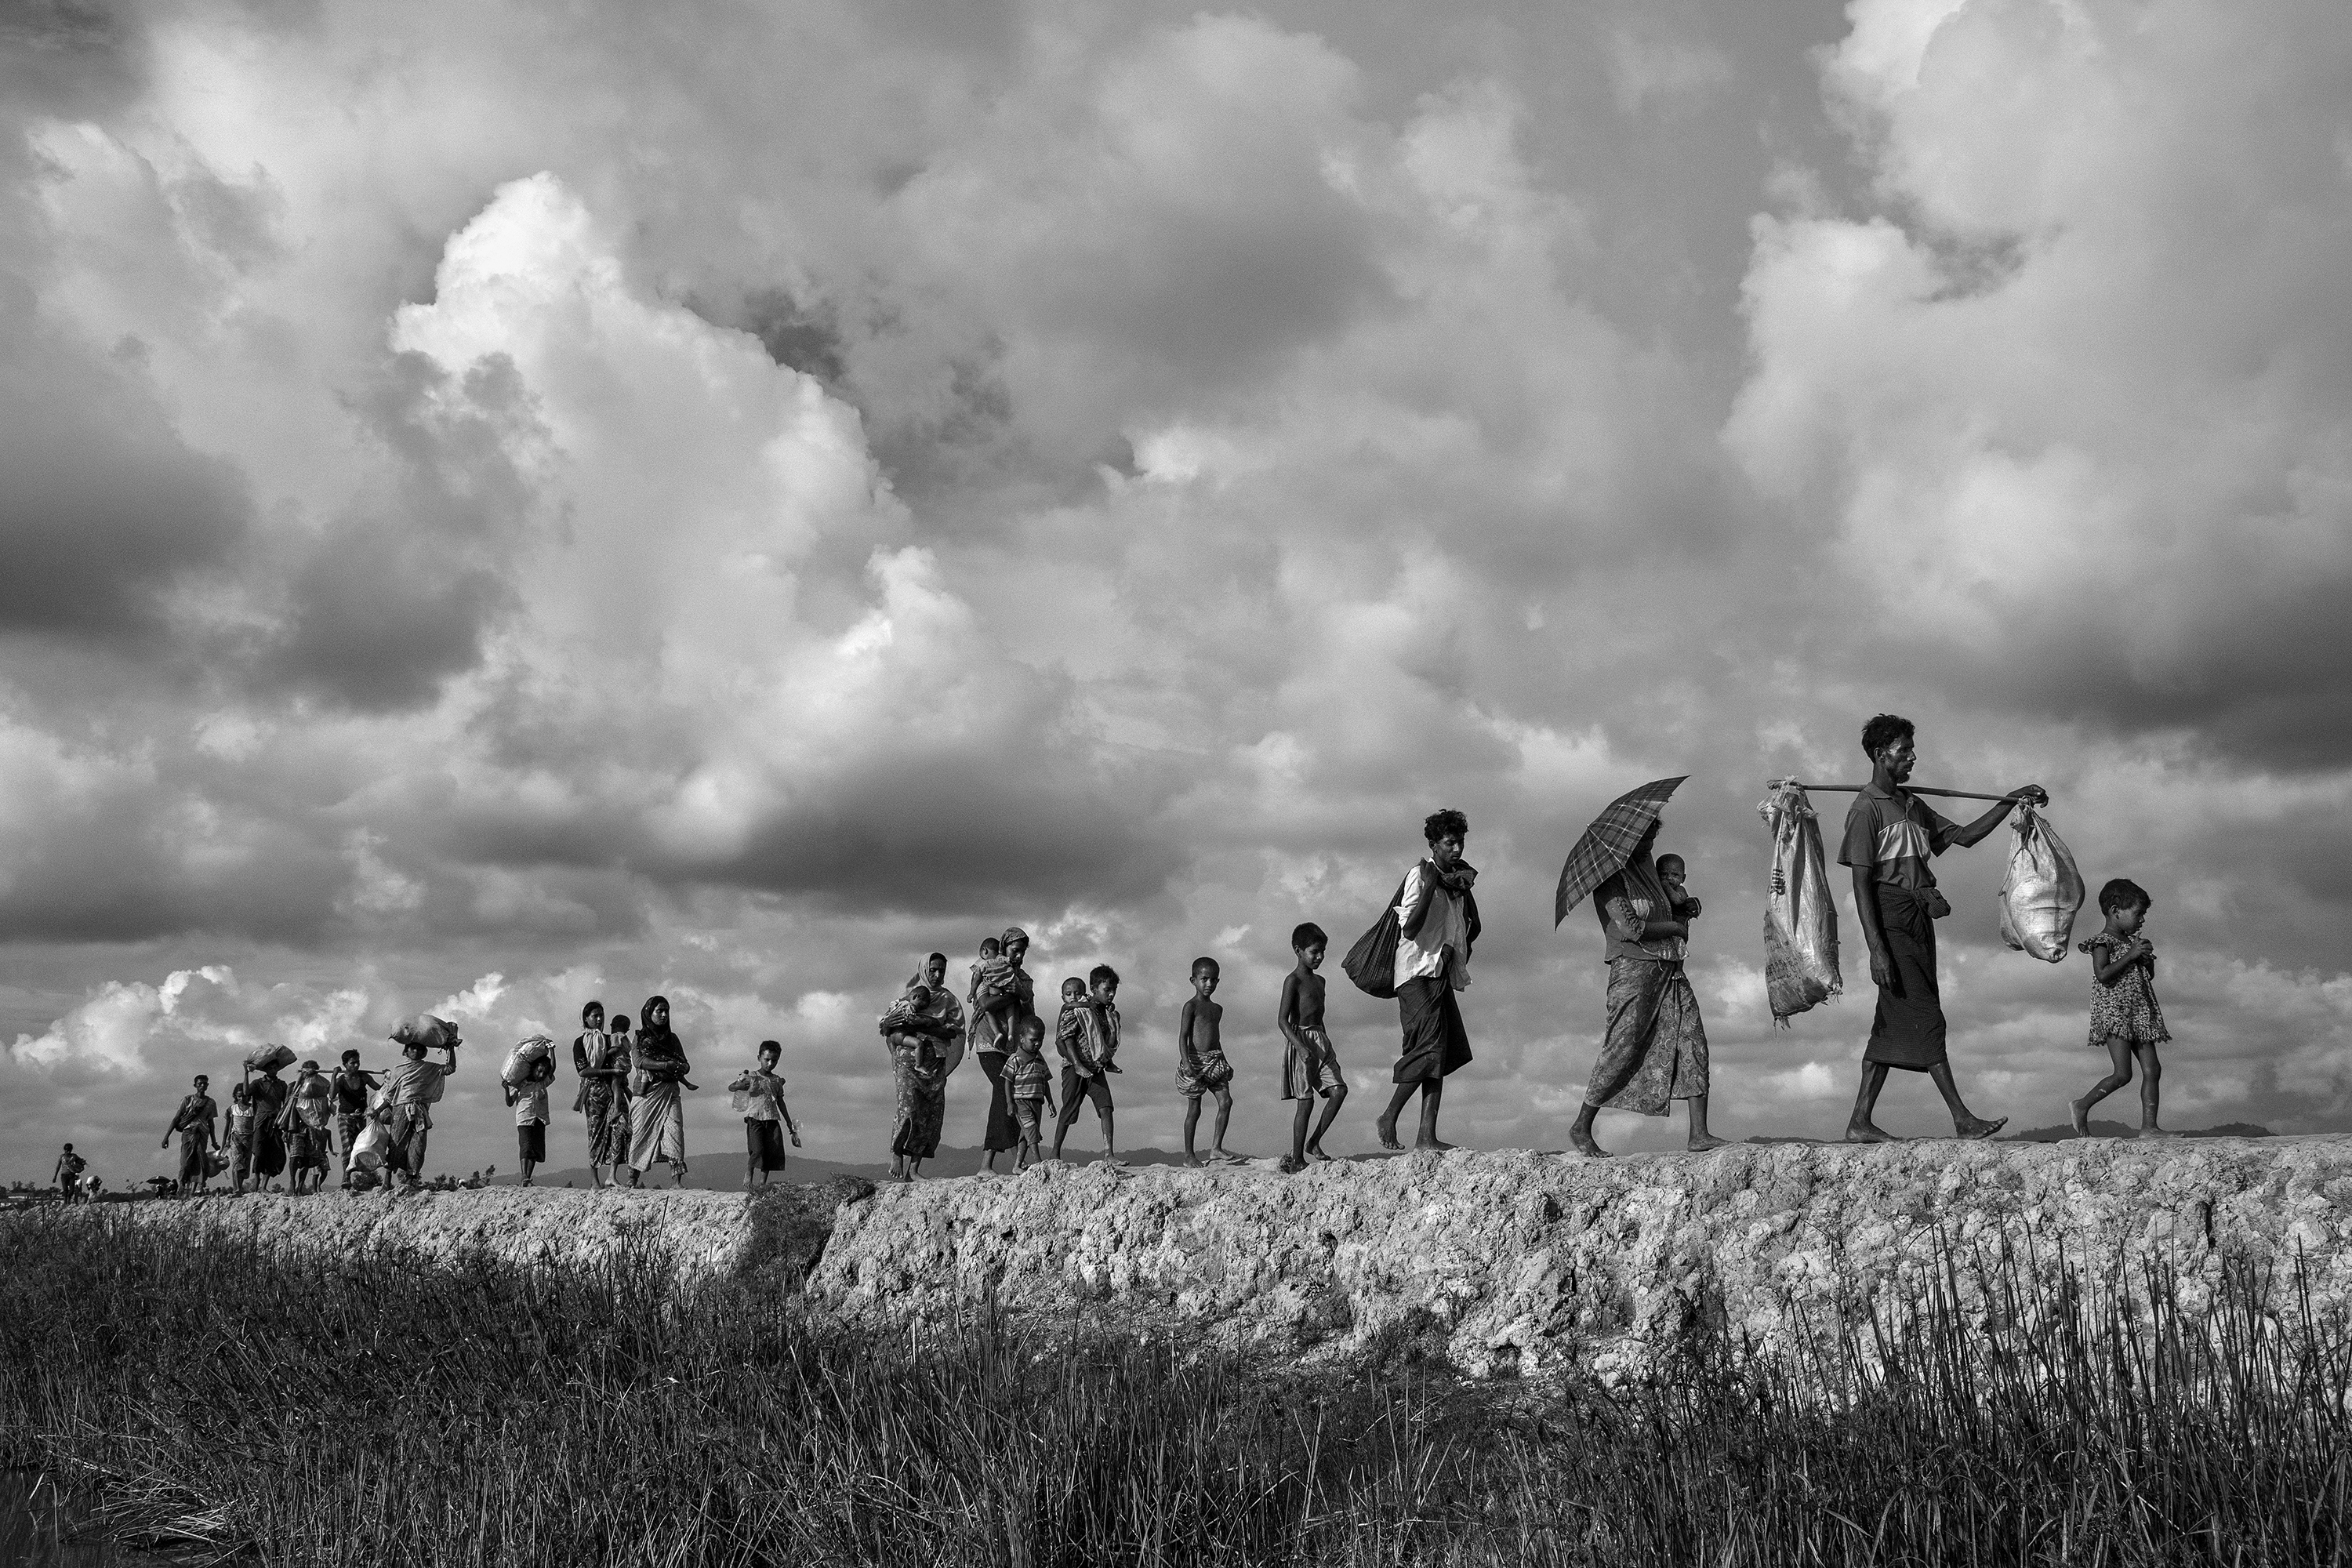 Rohingya refugees carry their belongings as they walk on the Bangladesh side of the Naf River after fleeing Myanmar.